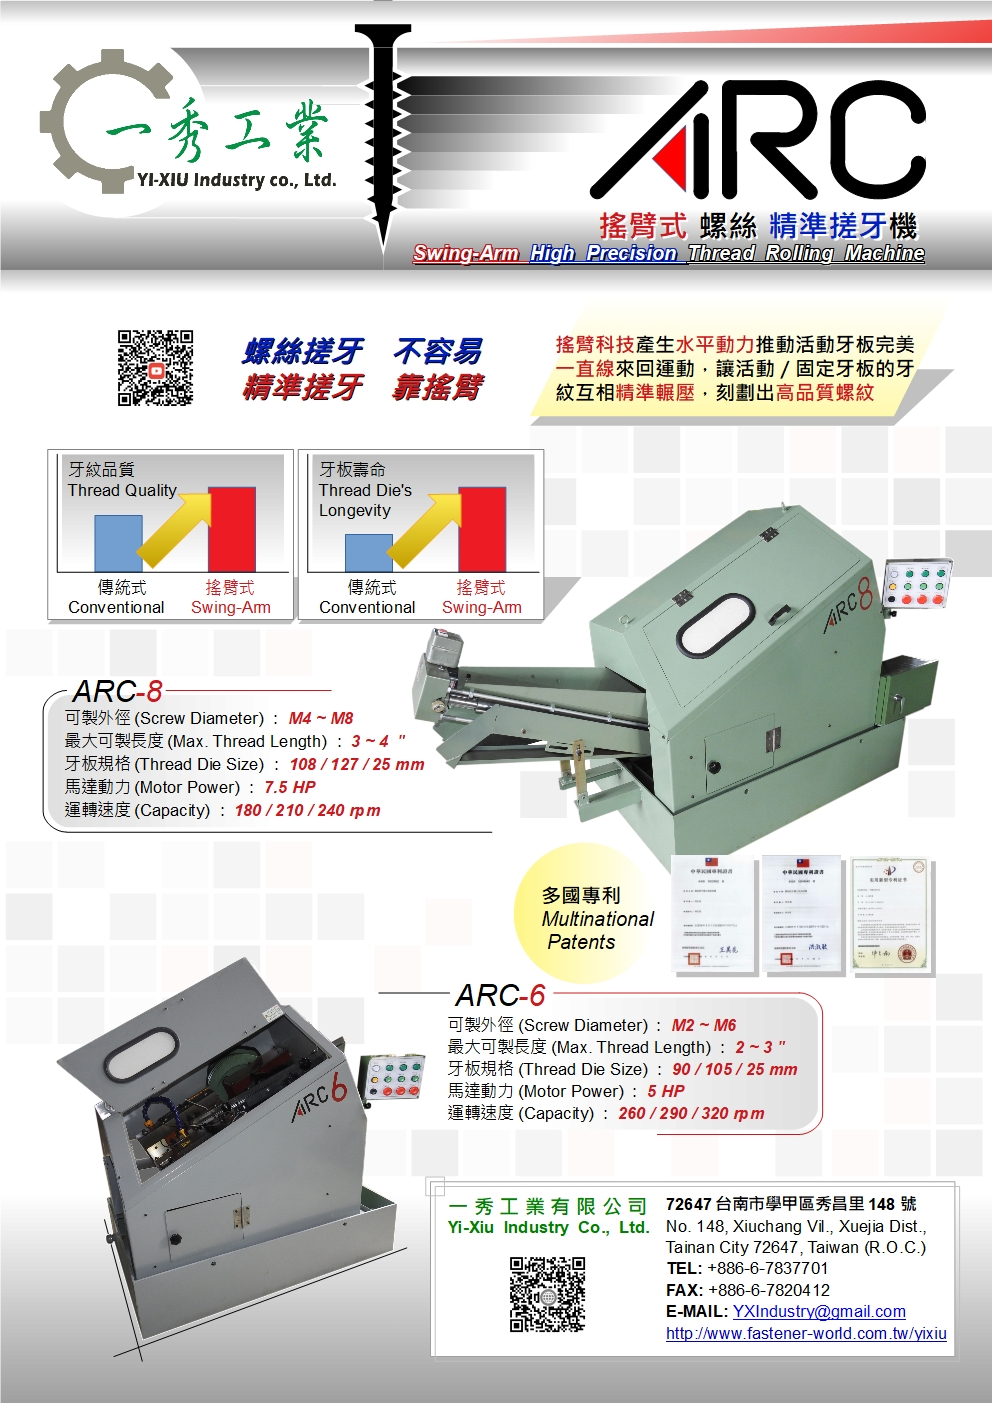 YI-XIU INDUSTRY CO., LTD. Online Catalogues